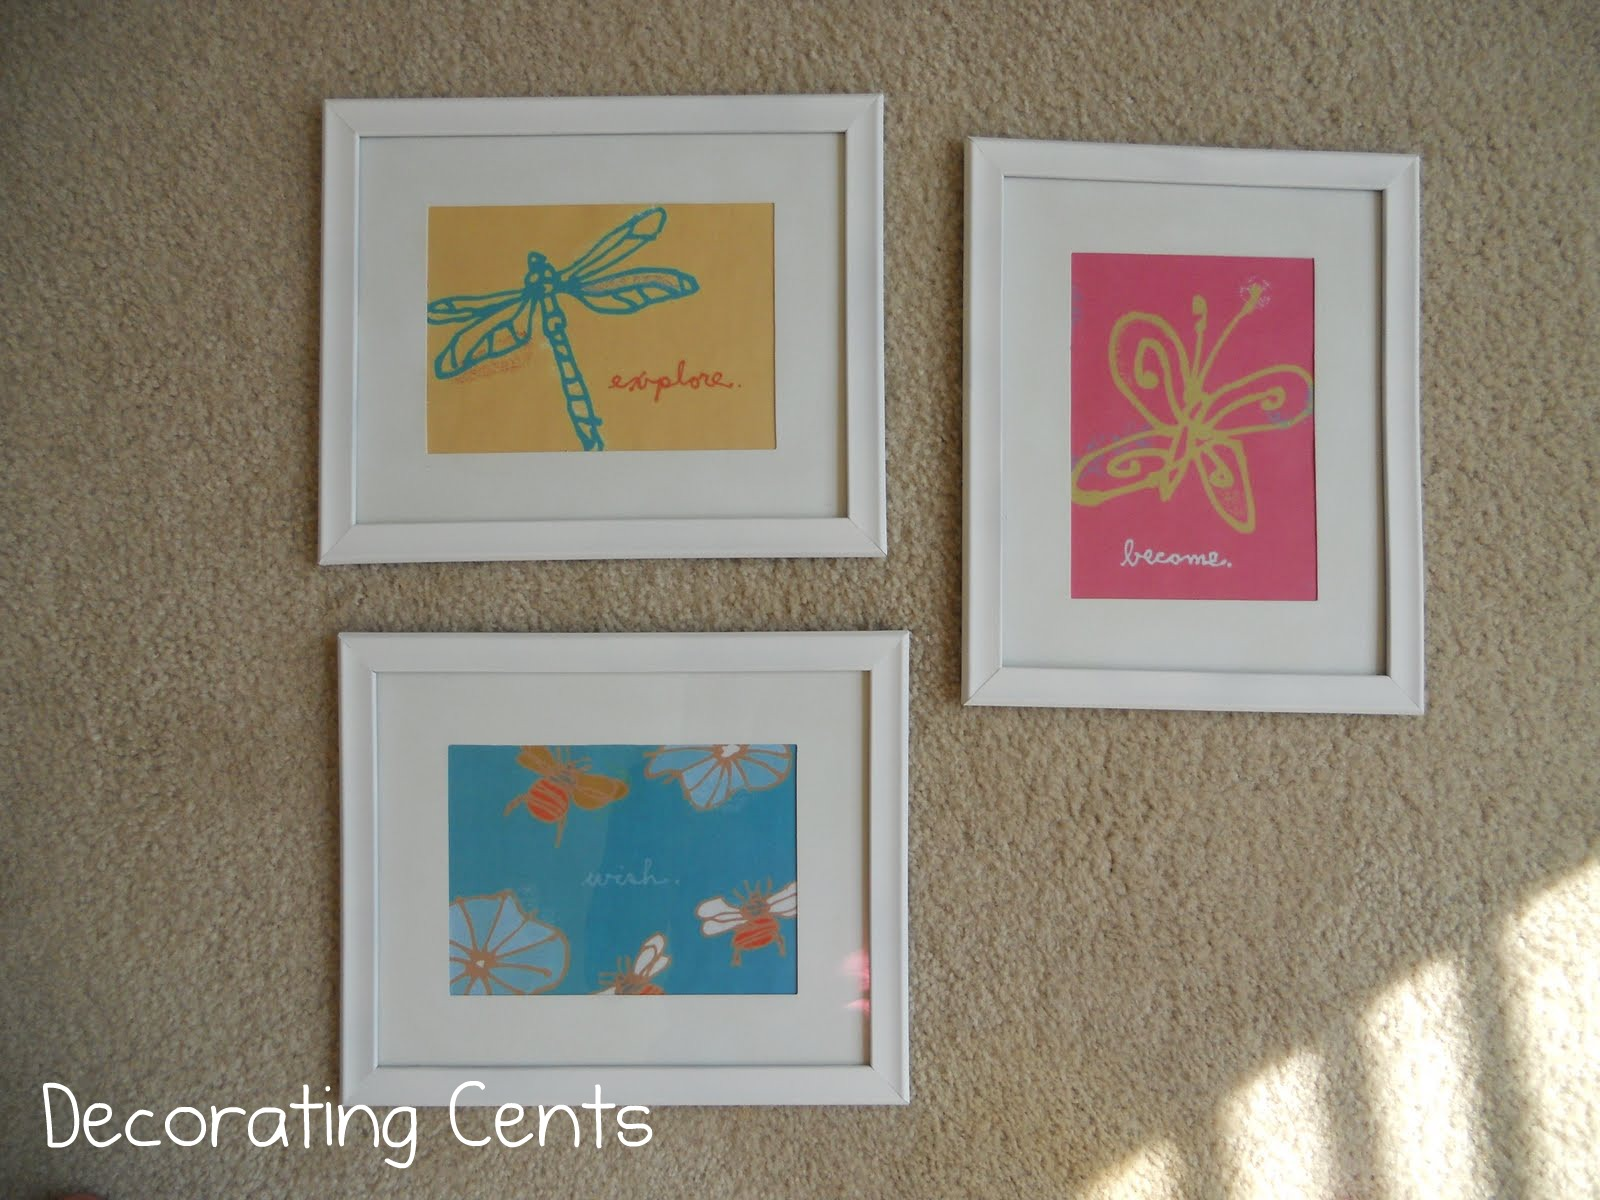 Decorating Cents: July 2011